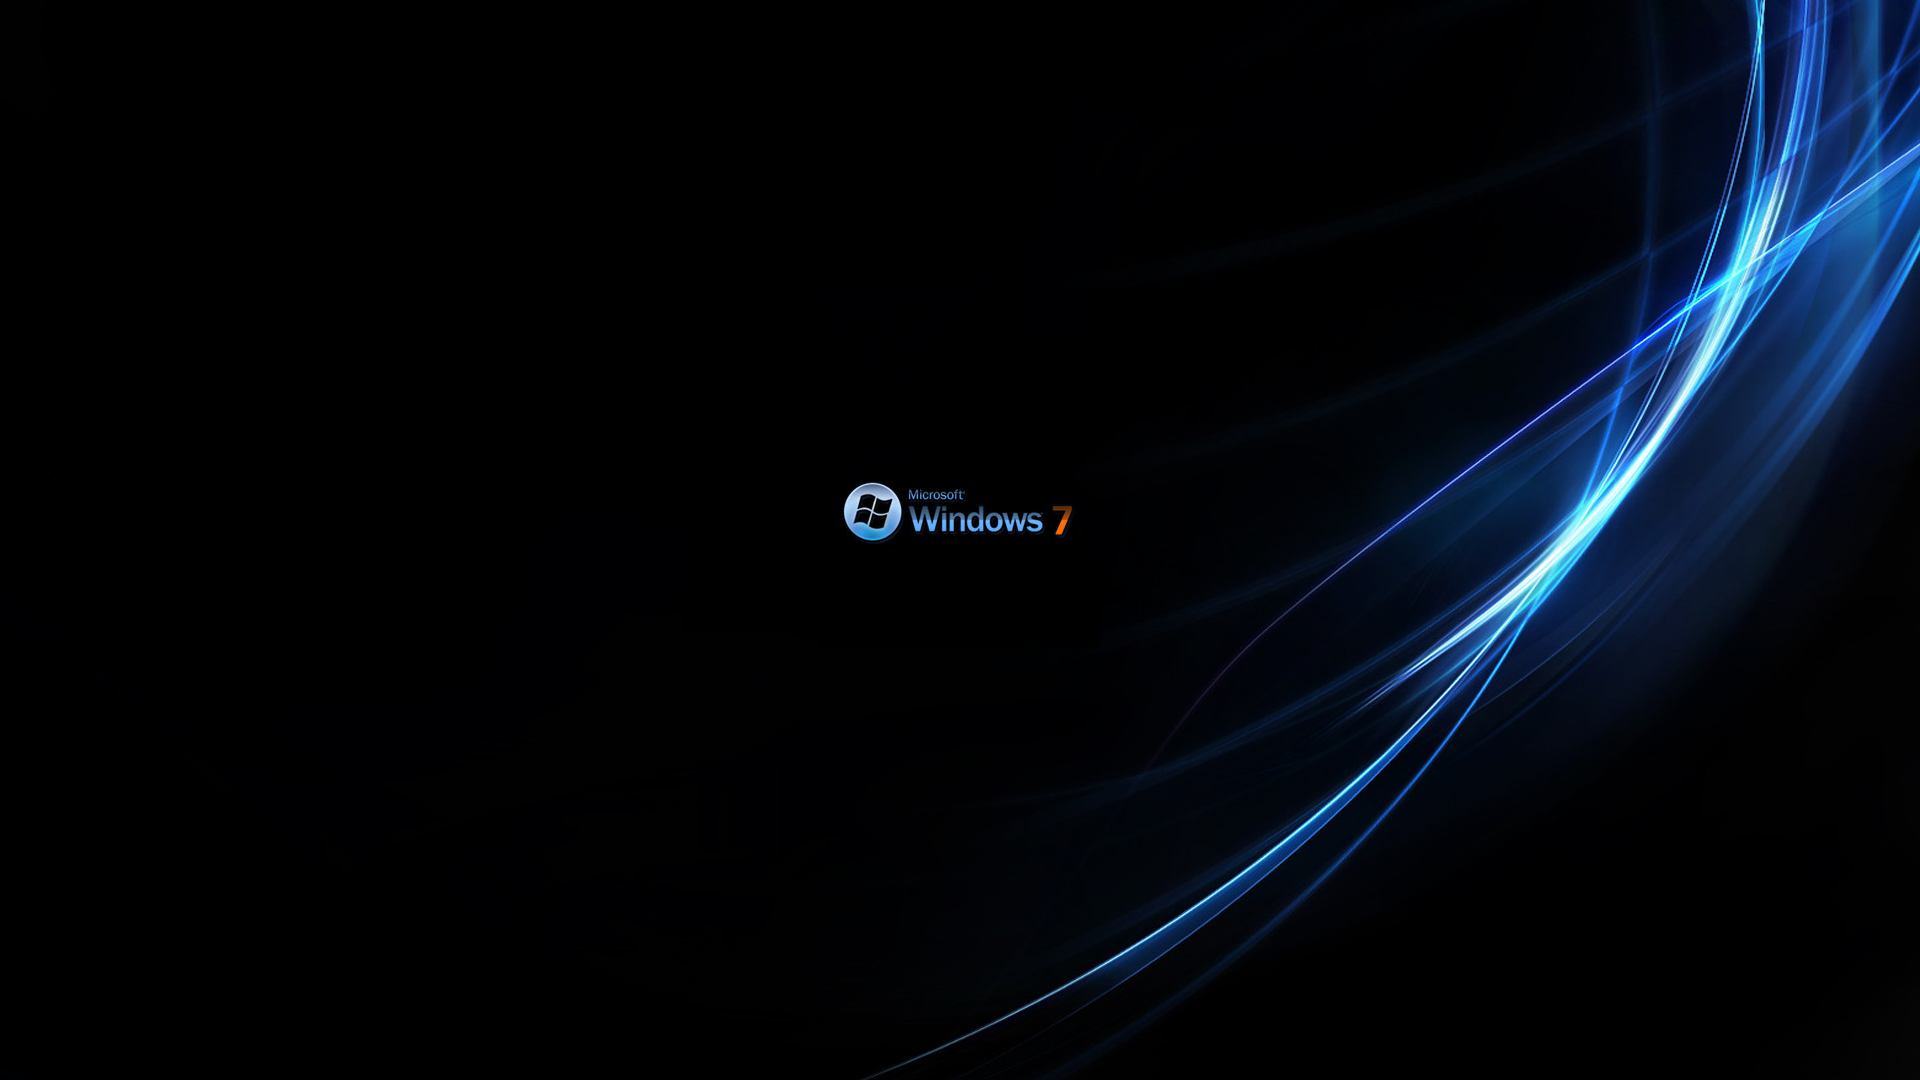 Windows 7 Wallpaper 1920x1080 Hd Windows 7 wallpaper 1920x1080 1920x1080